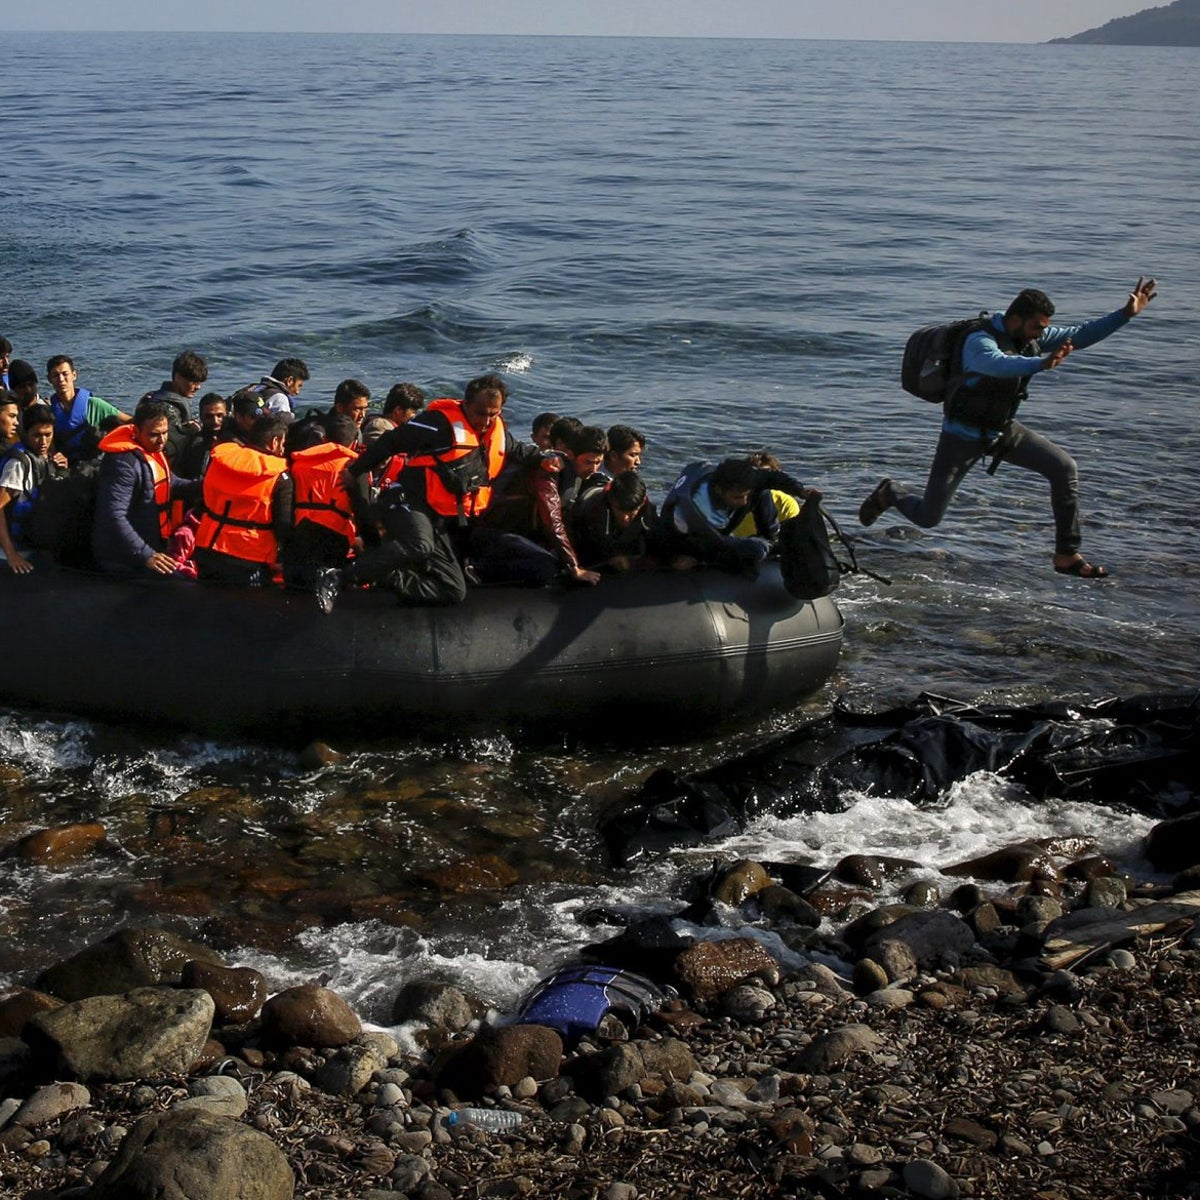 An Afghan migrant jumps off an overcrowded raft onto a beach at the Greek island of Lesbos, October 19, 2015.